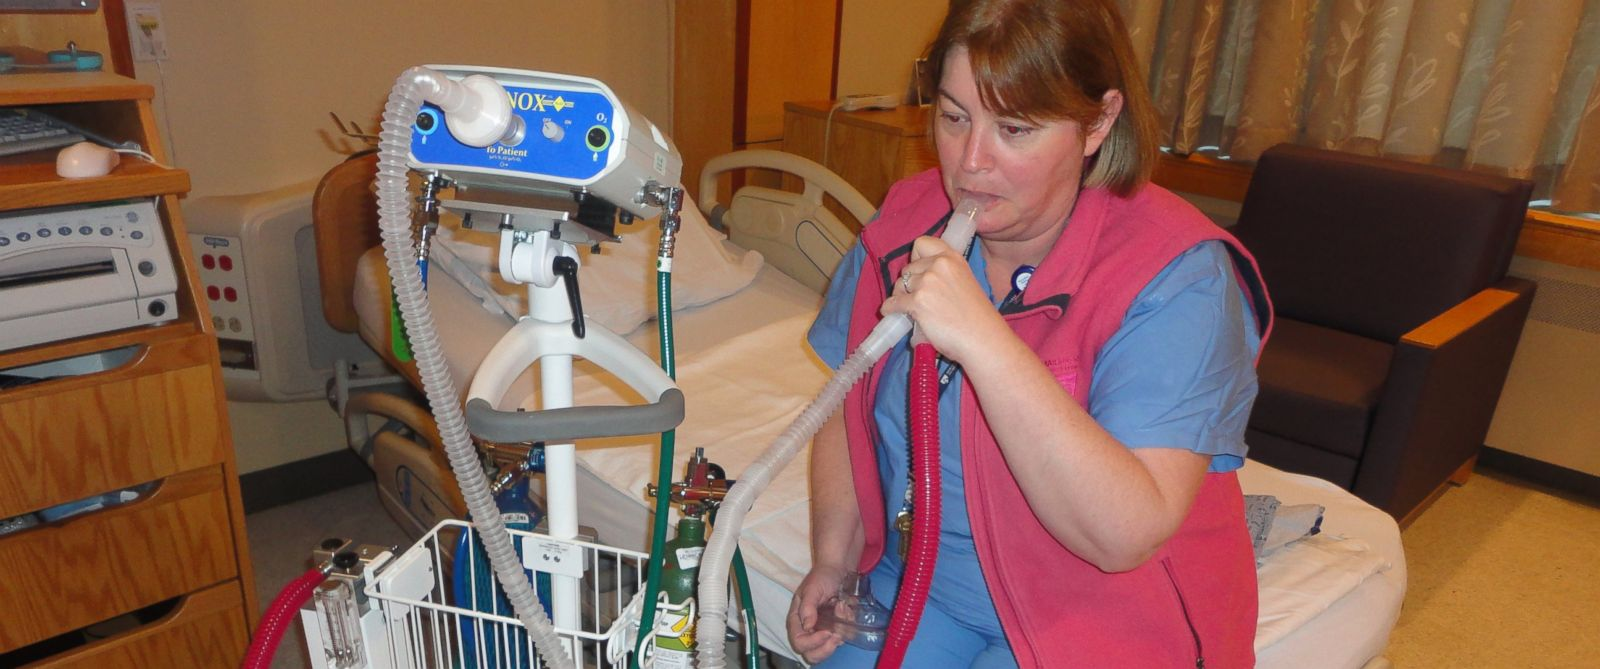 PHOTO: Kate McGovern, a nurse educator and midwife at Brigham and Women's Hospital in Boston, Mass., demonstrates the equipment that delivers nitrous oxide to women who elect to use it for pain relief during labor.